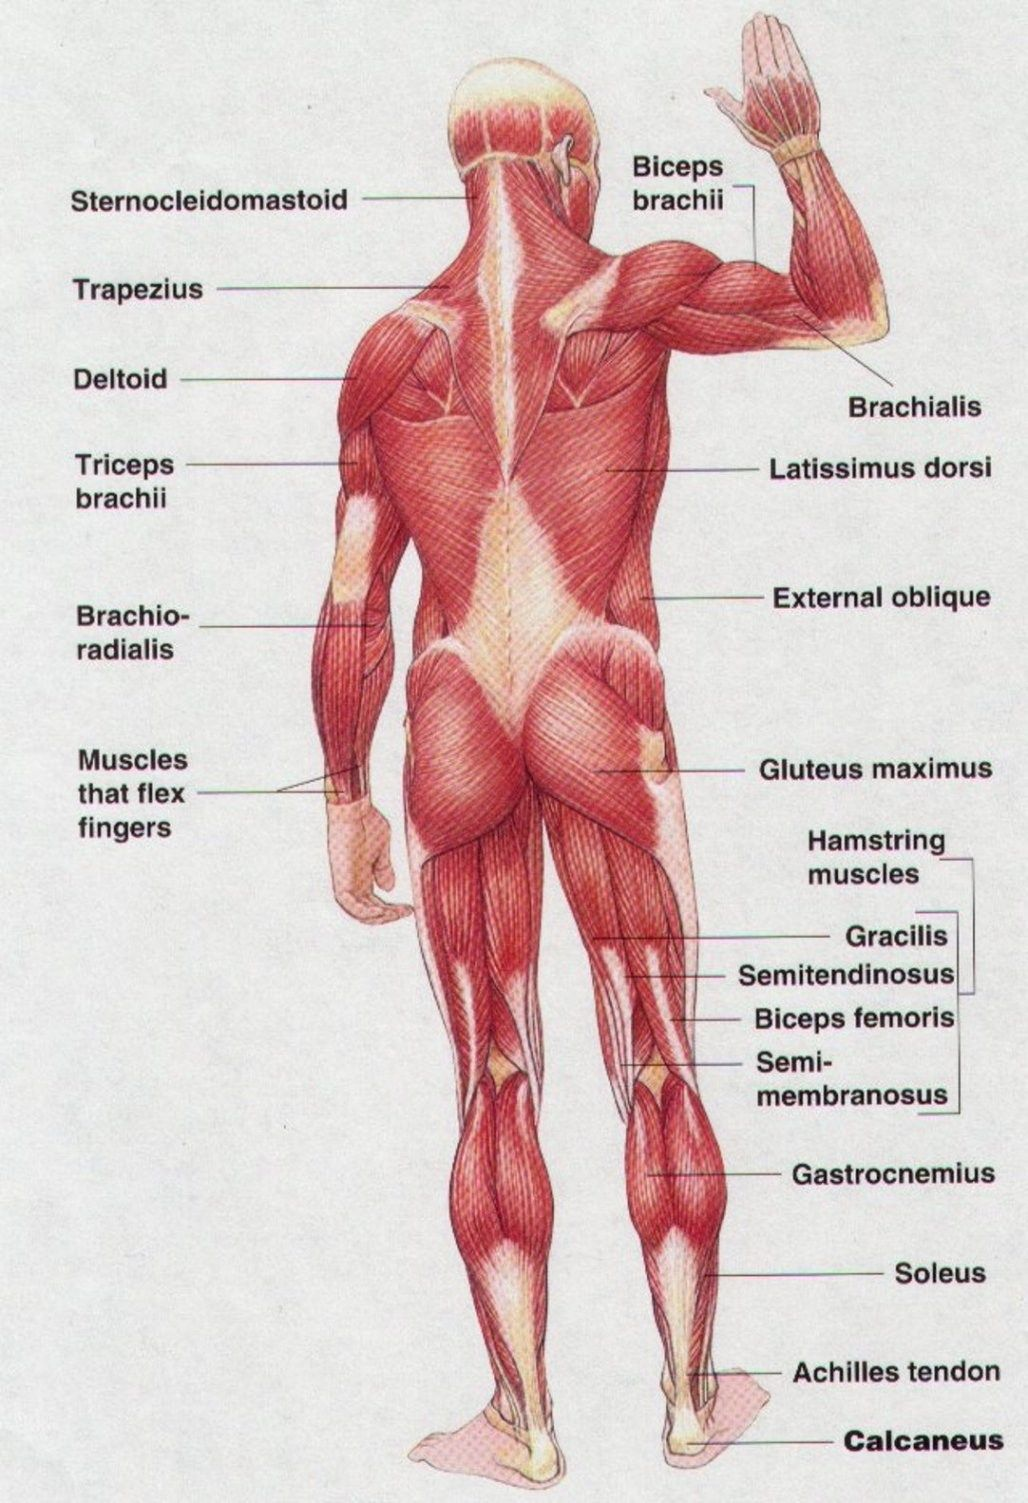 small resolution of human back muscle diagram human back muscle diagram lower back muscle diagrams labeled muscles human